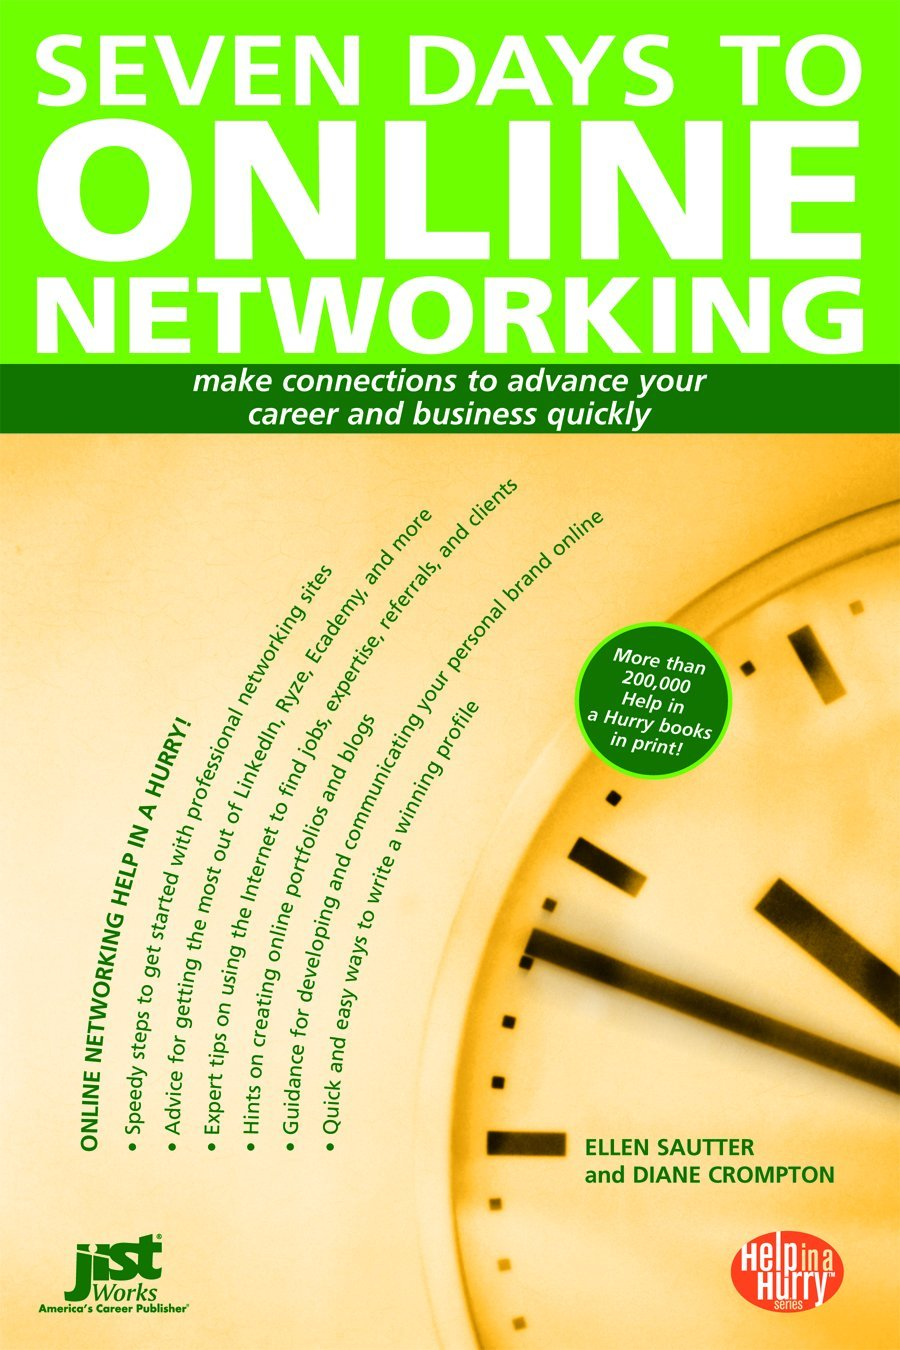 Seven Days To Online Networking: Make Connections To Advance Your Career And Business Quickly (Help In A Hurry)